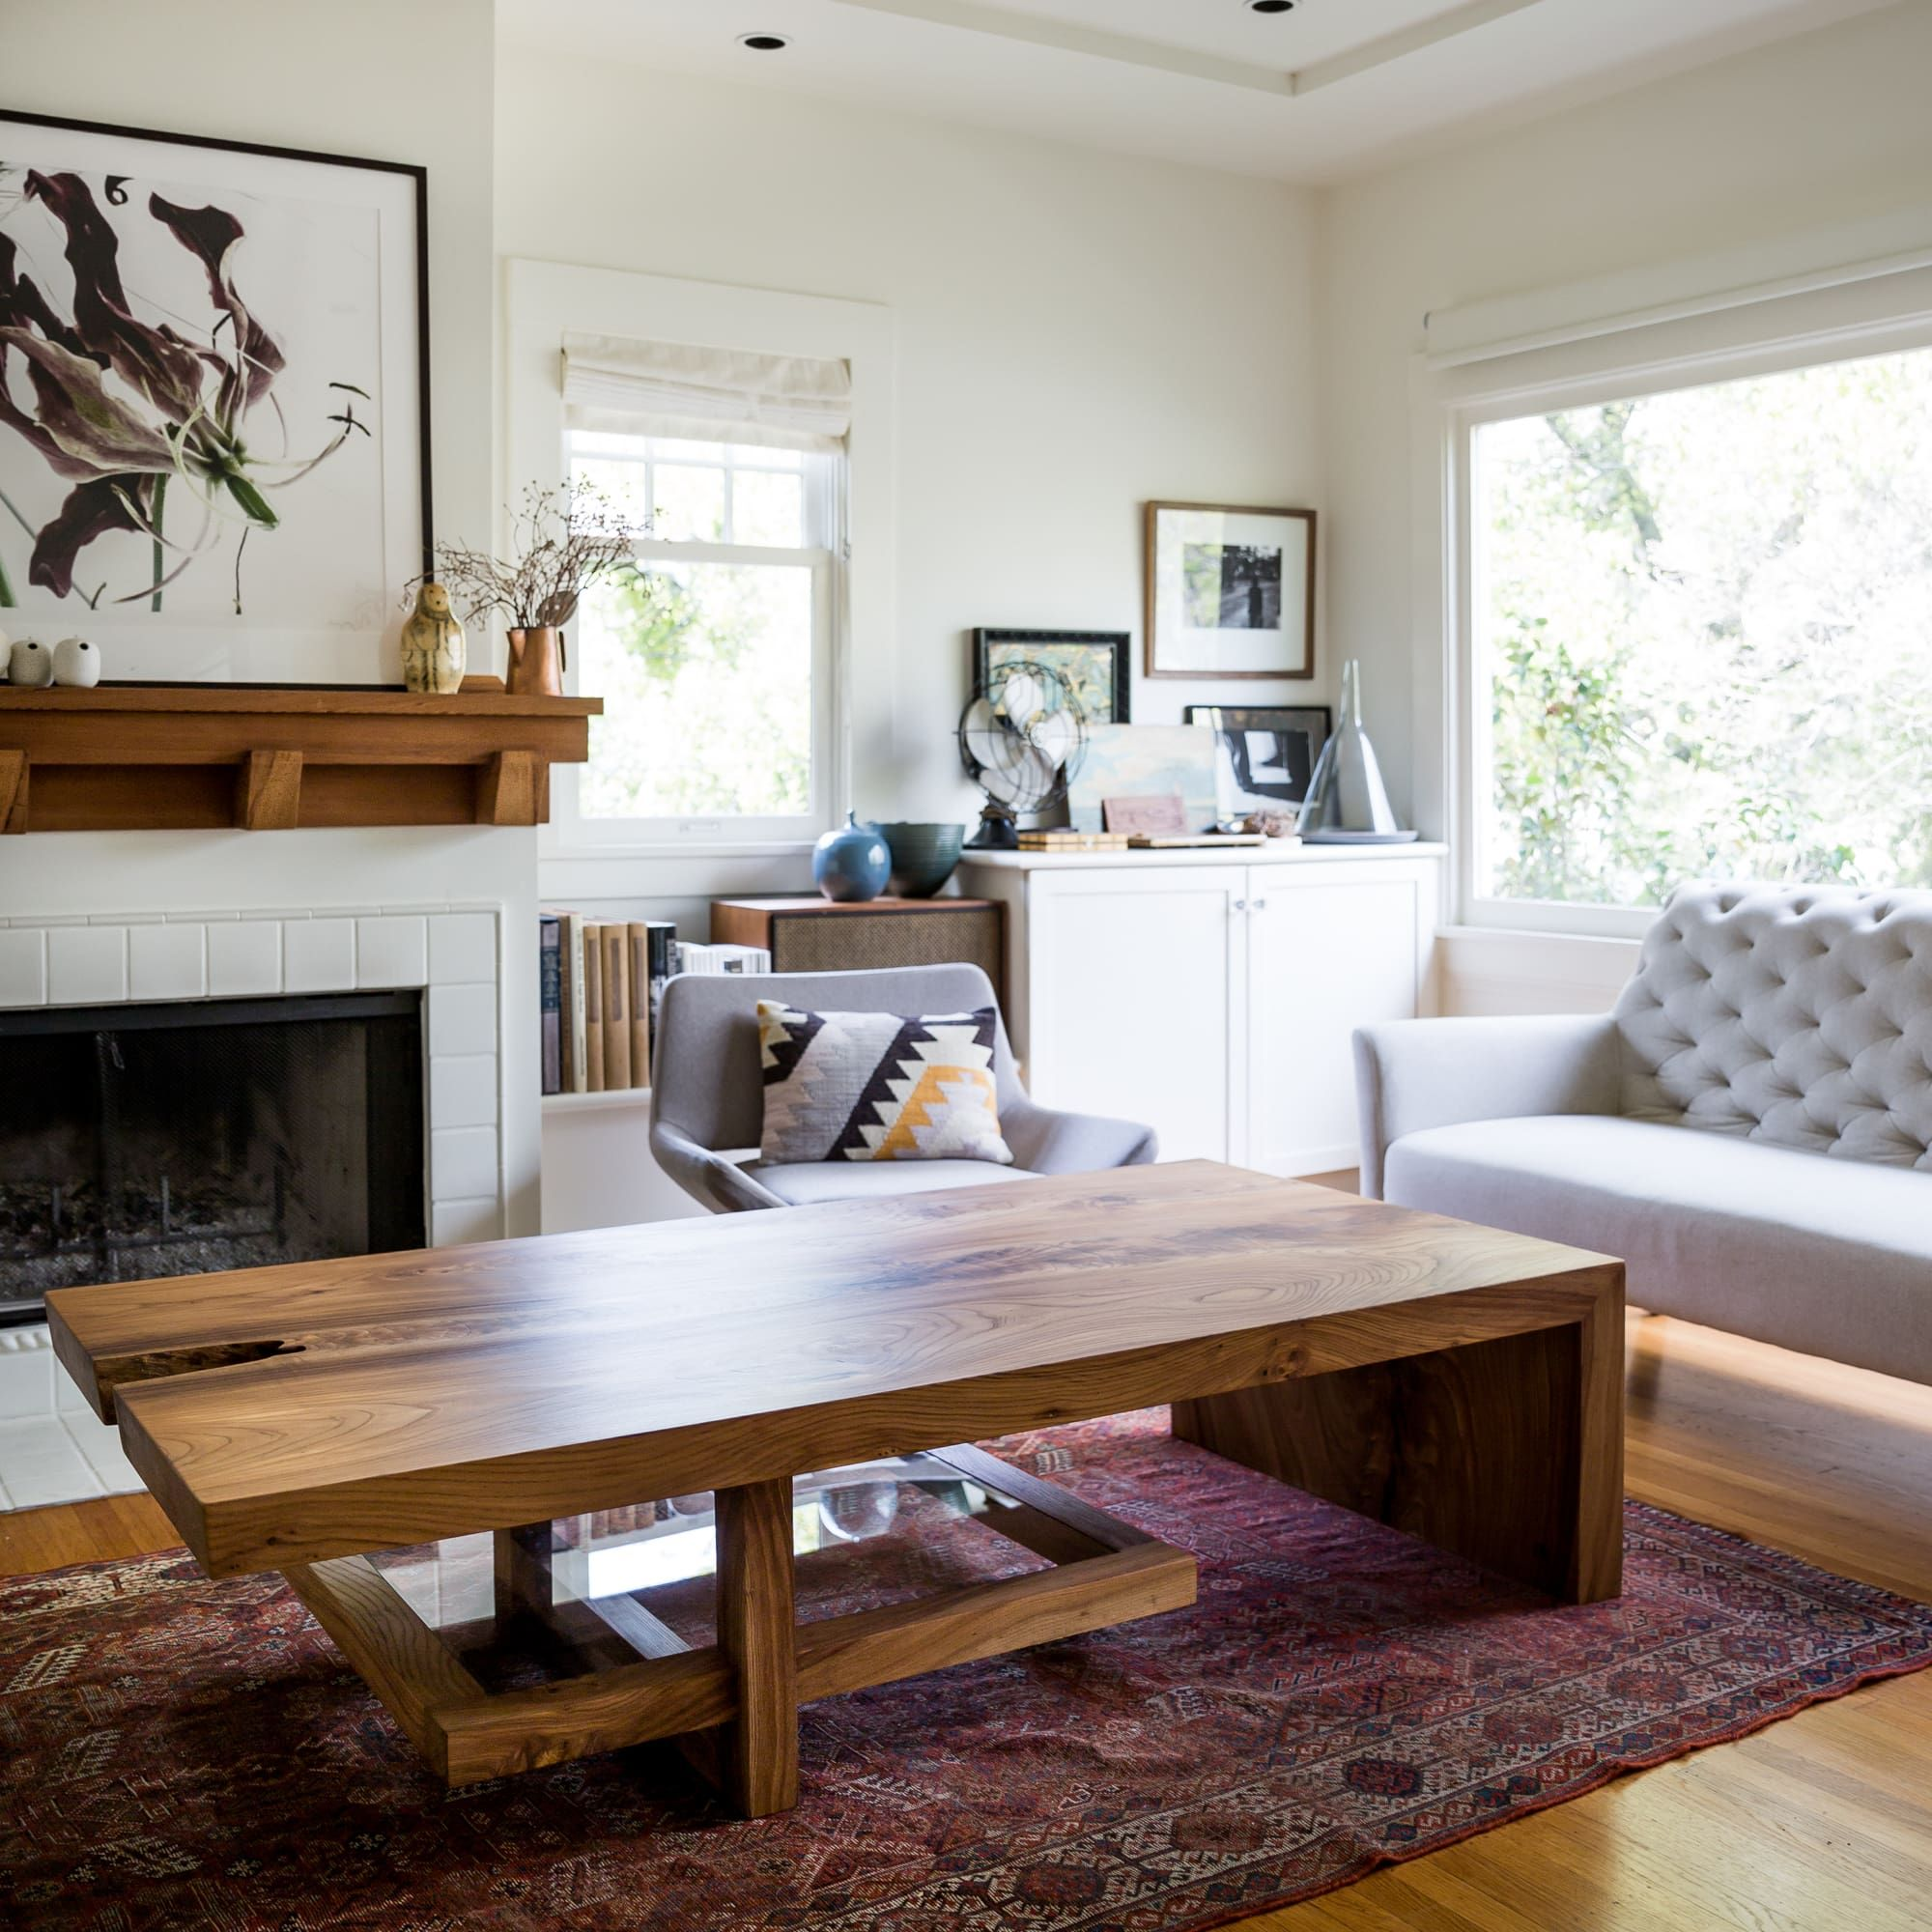 Custom Elm Coffee Table By Evan Shively And Arborica At Private Residence San Francisco